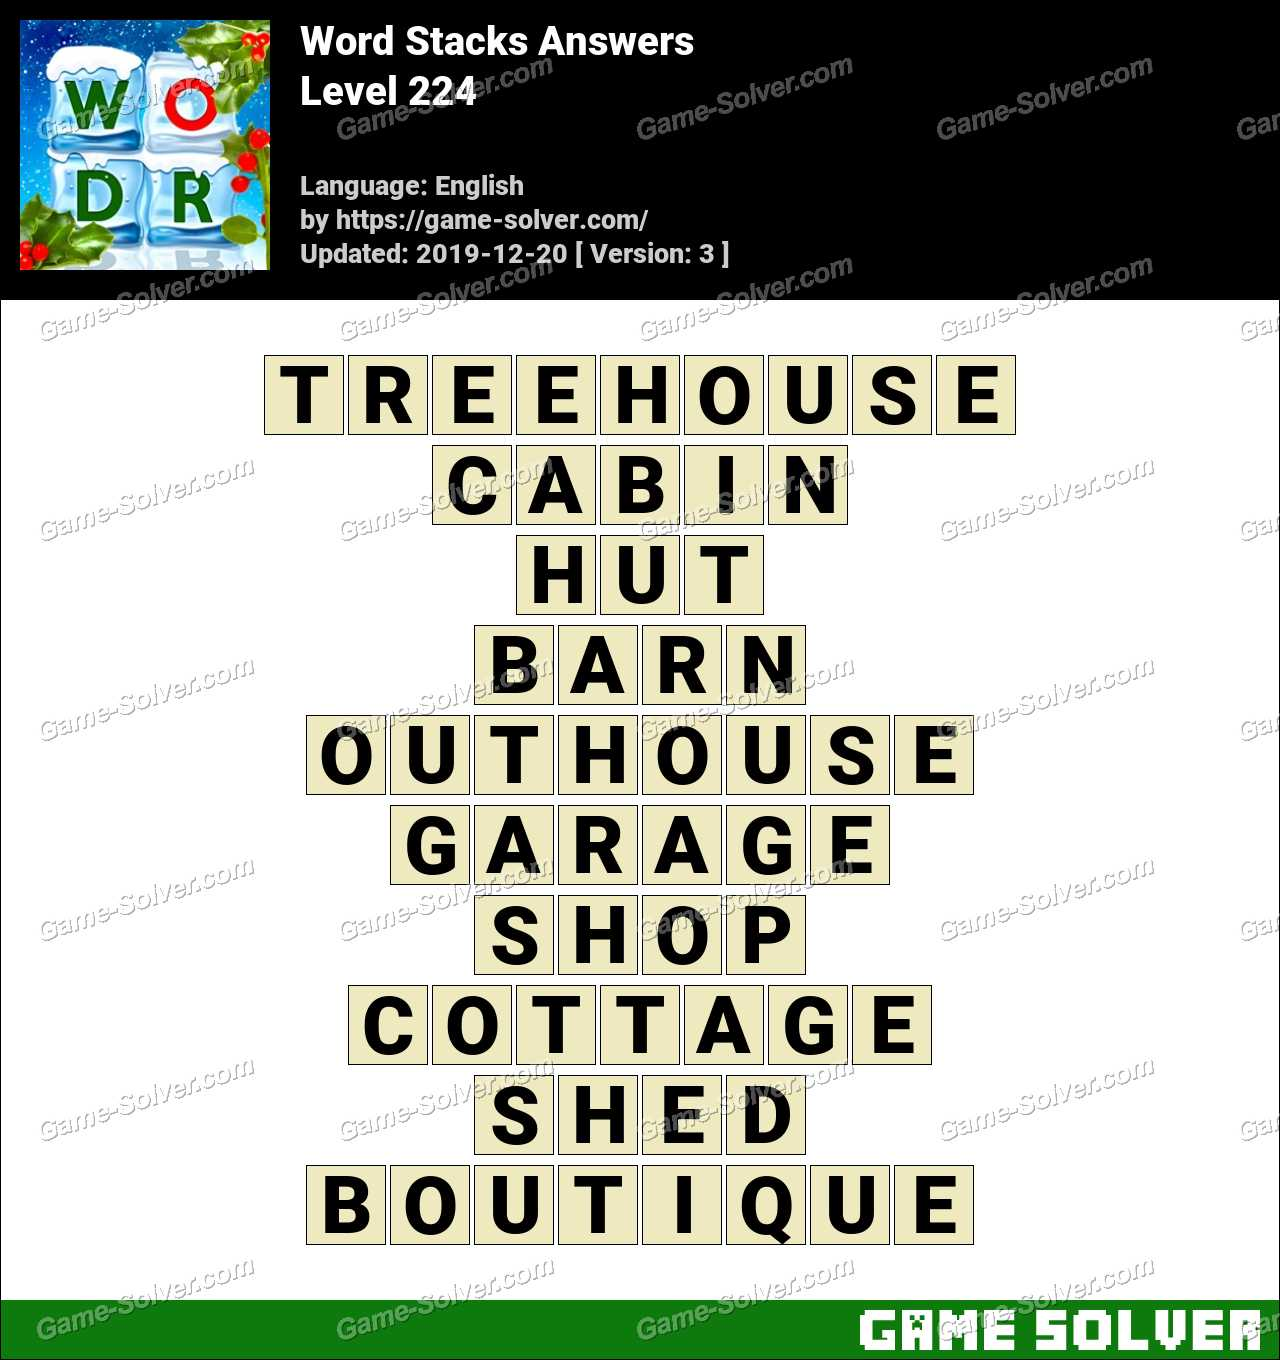 Word Stacks Level 224 Answers